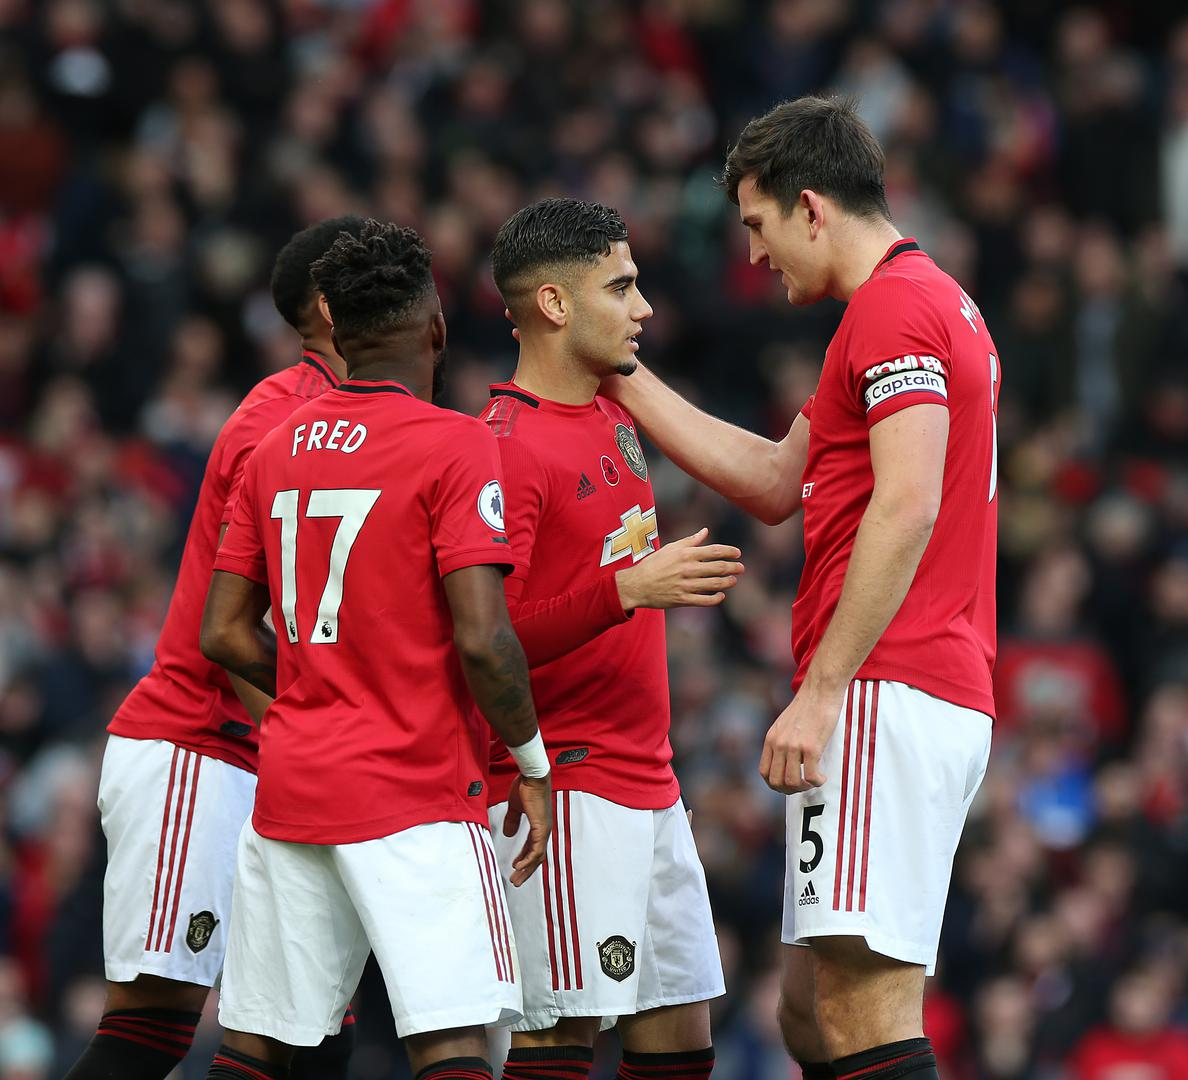 Harry Maguire embraces Andreas Pereira after his goal against Brighton